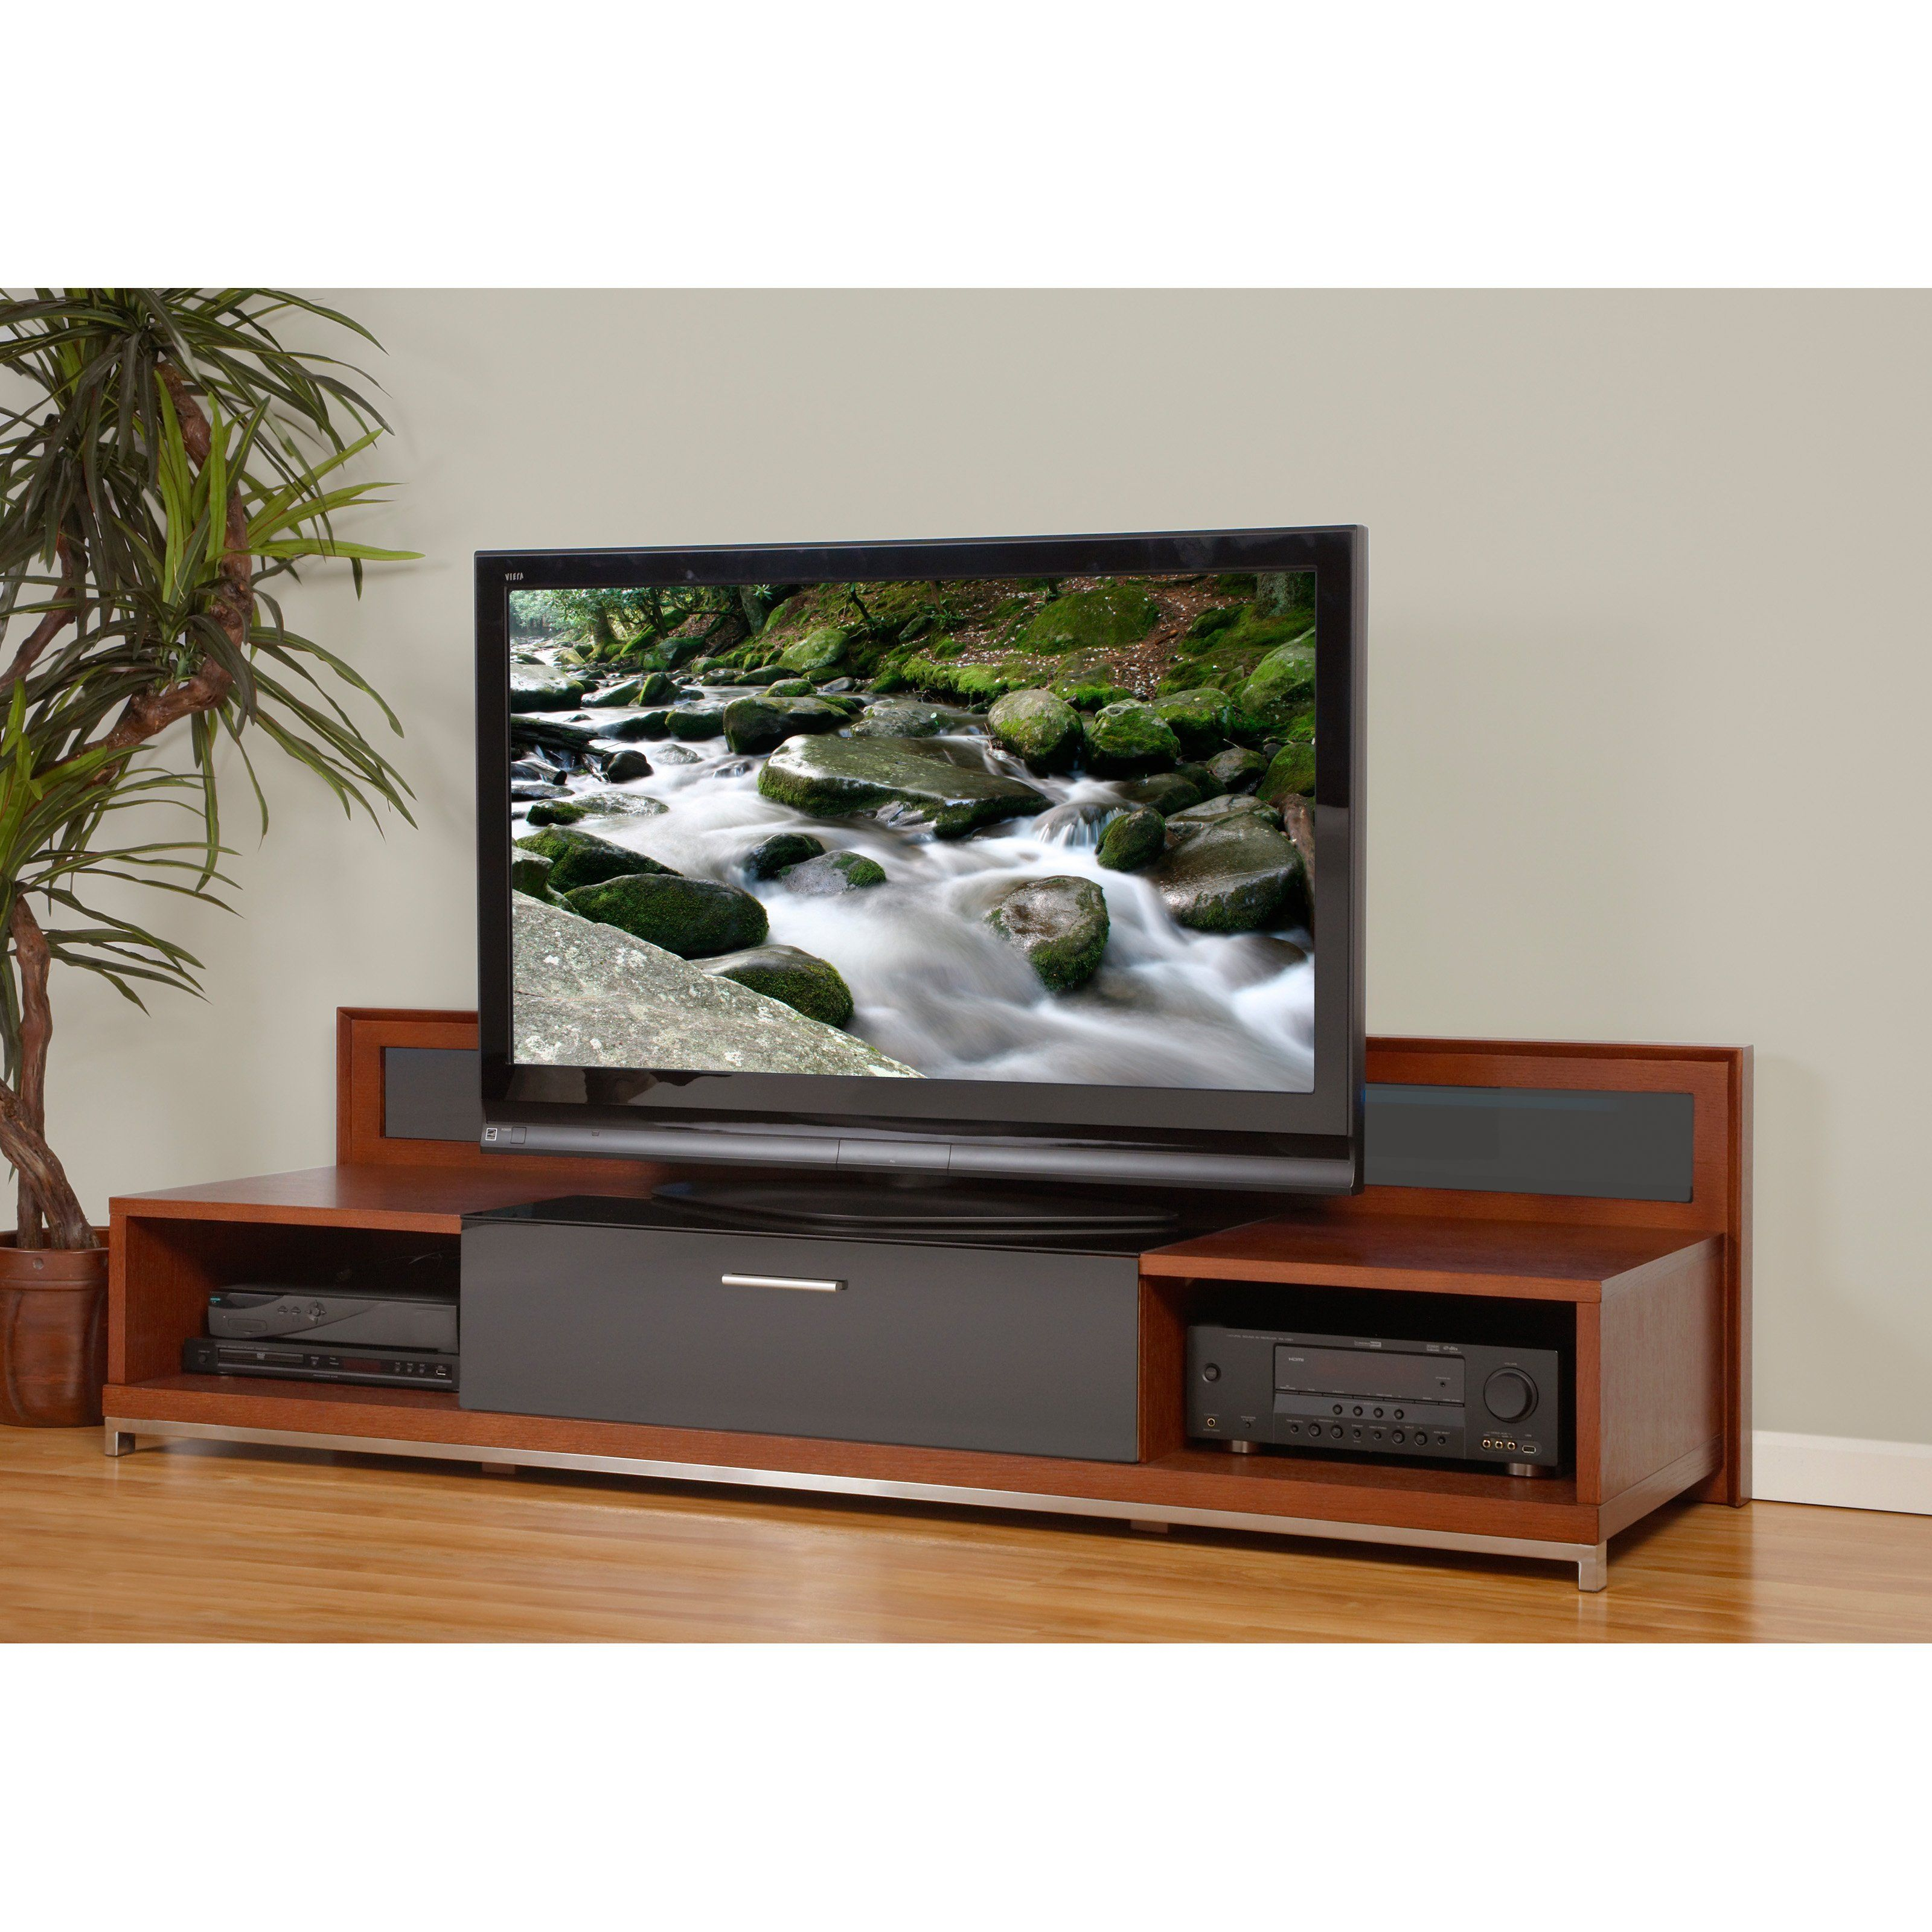 Have To Have It. Plateau Valencia 79 Inch Tv Stand In Walnut $ (View 2 of 30)